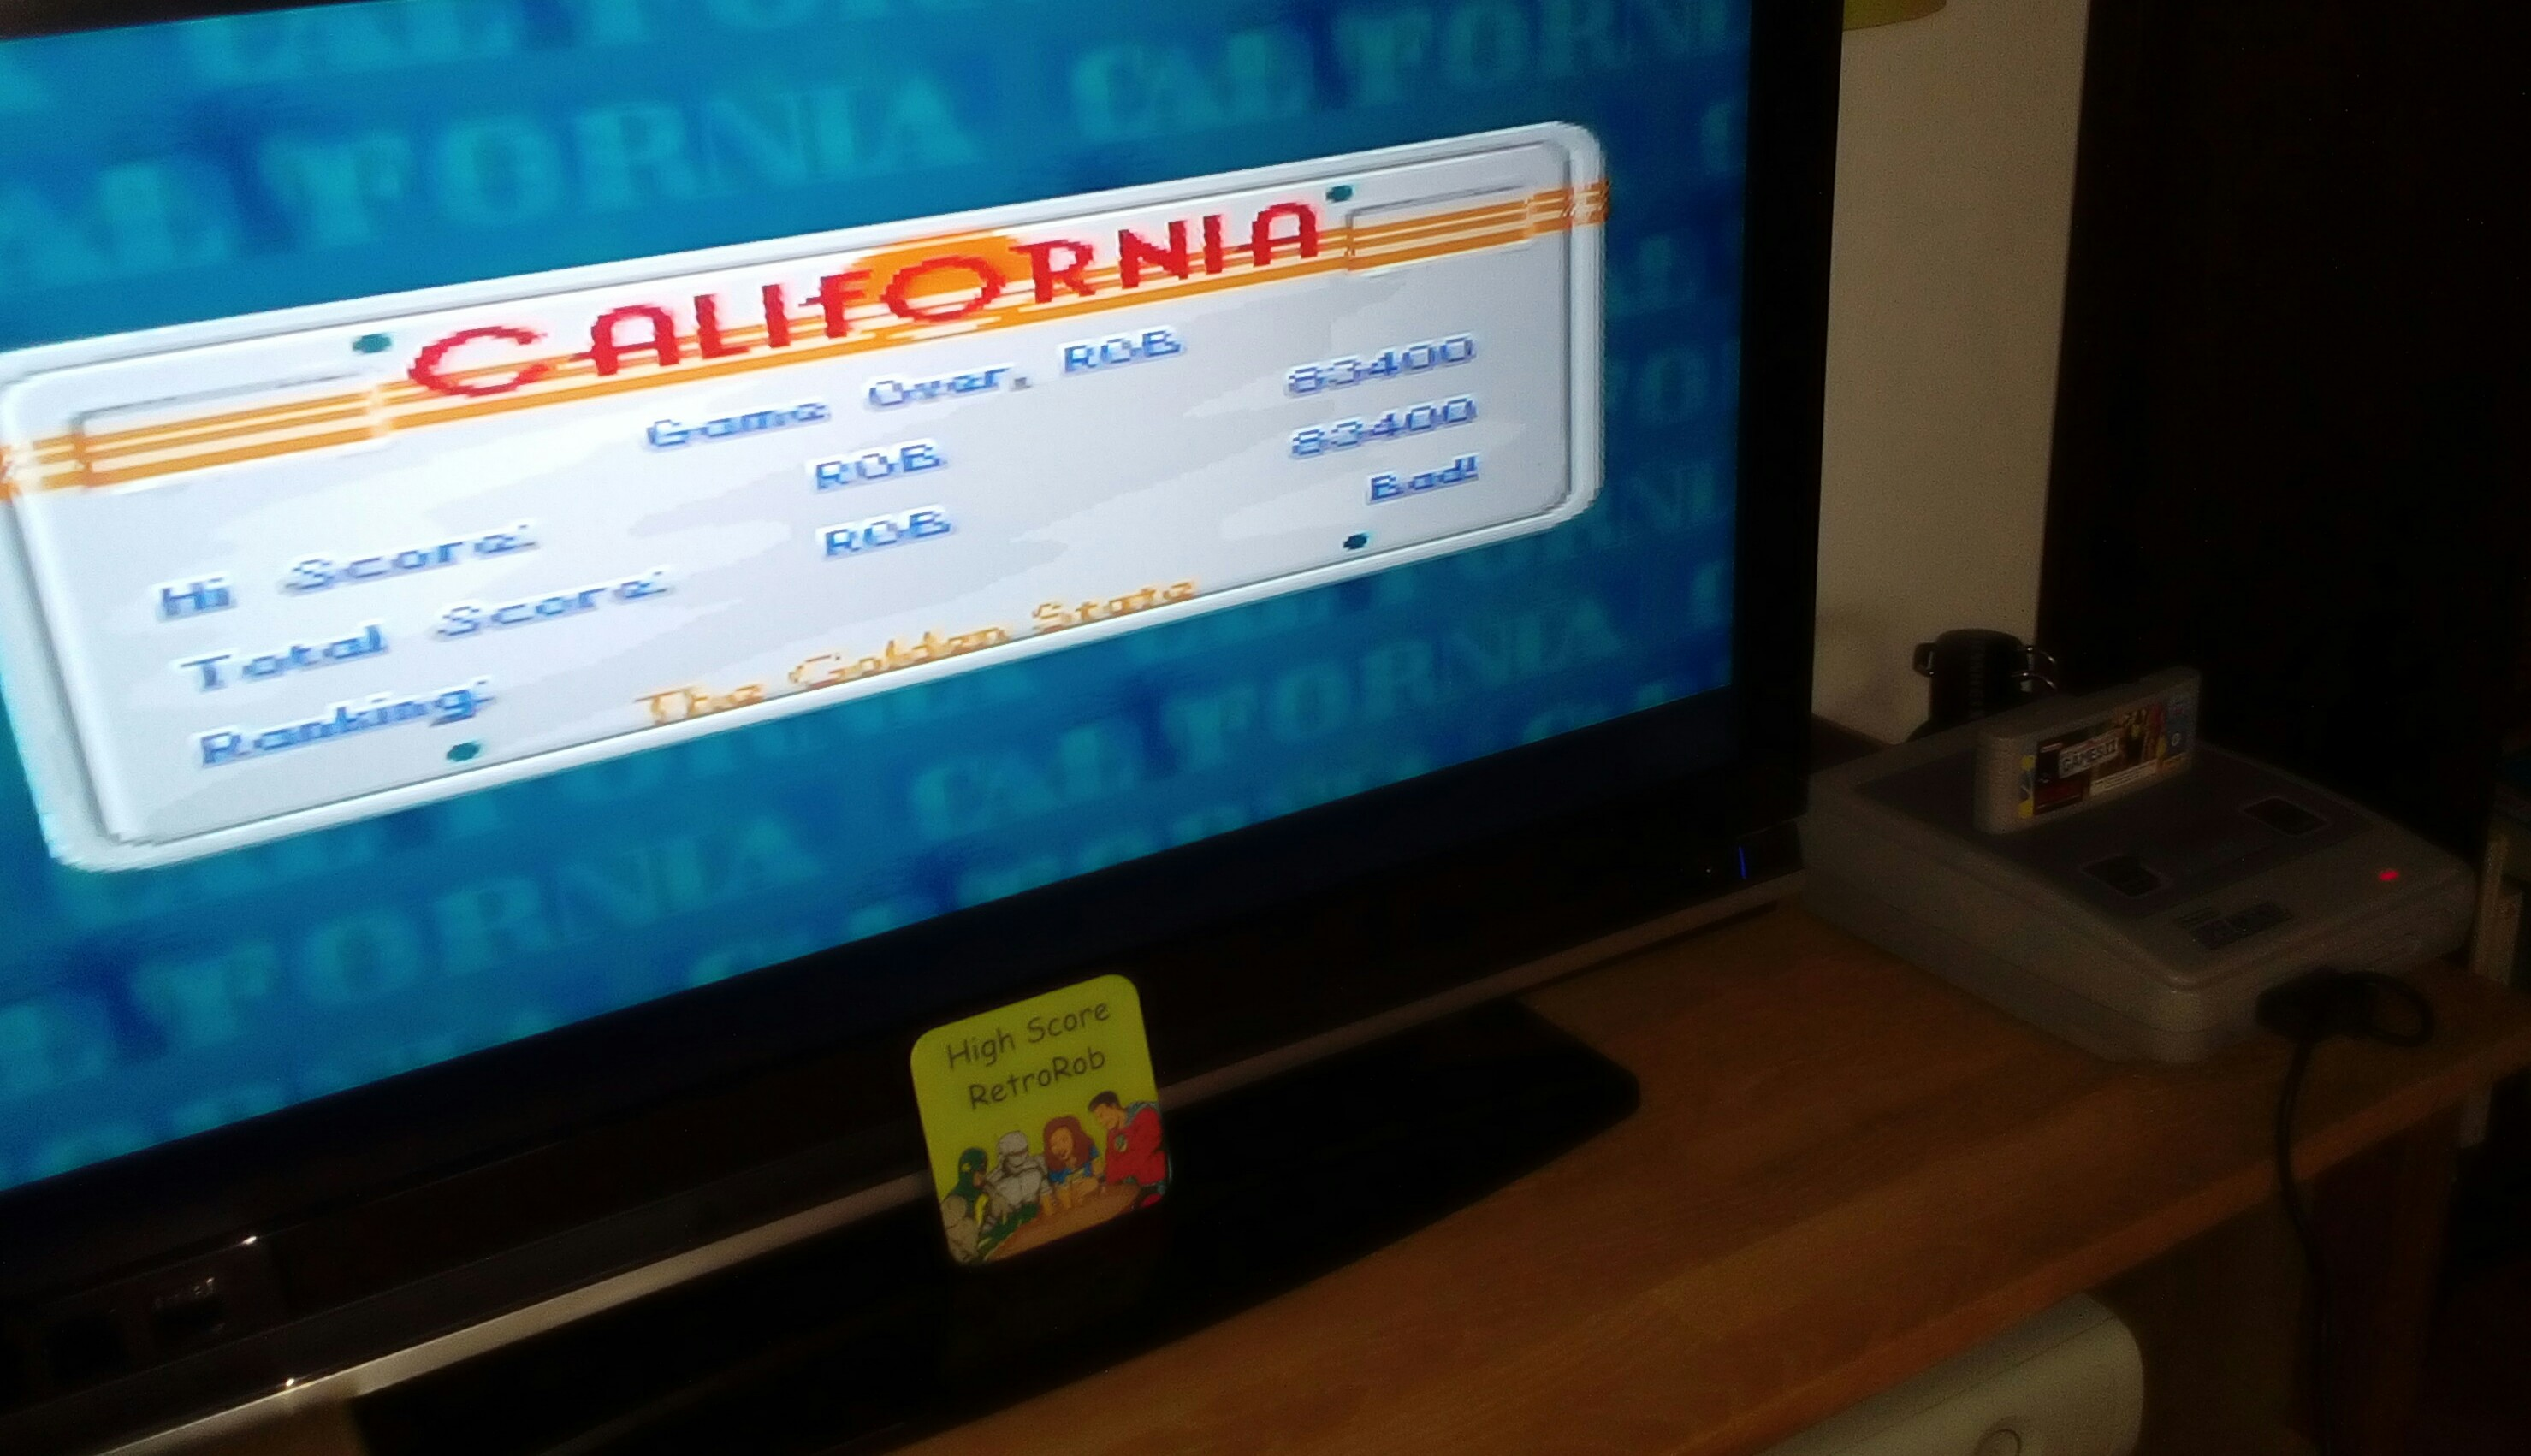 California Games II [Final Score After All Events] 83,400 points